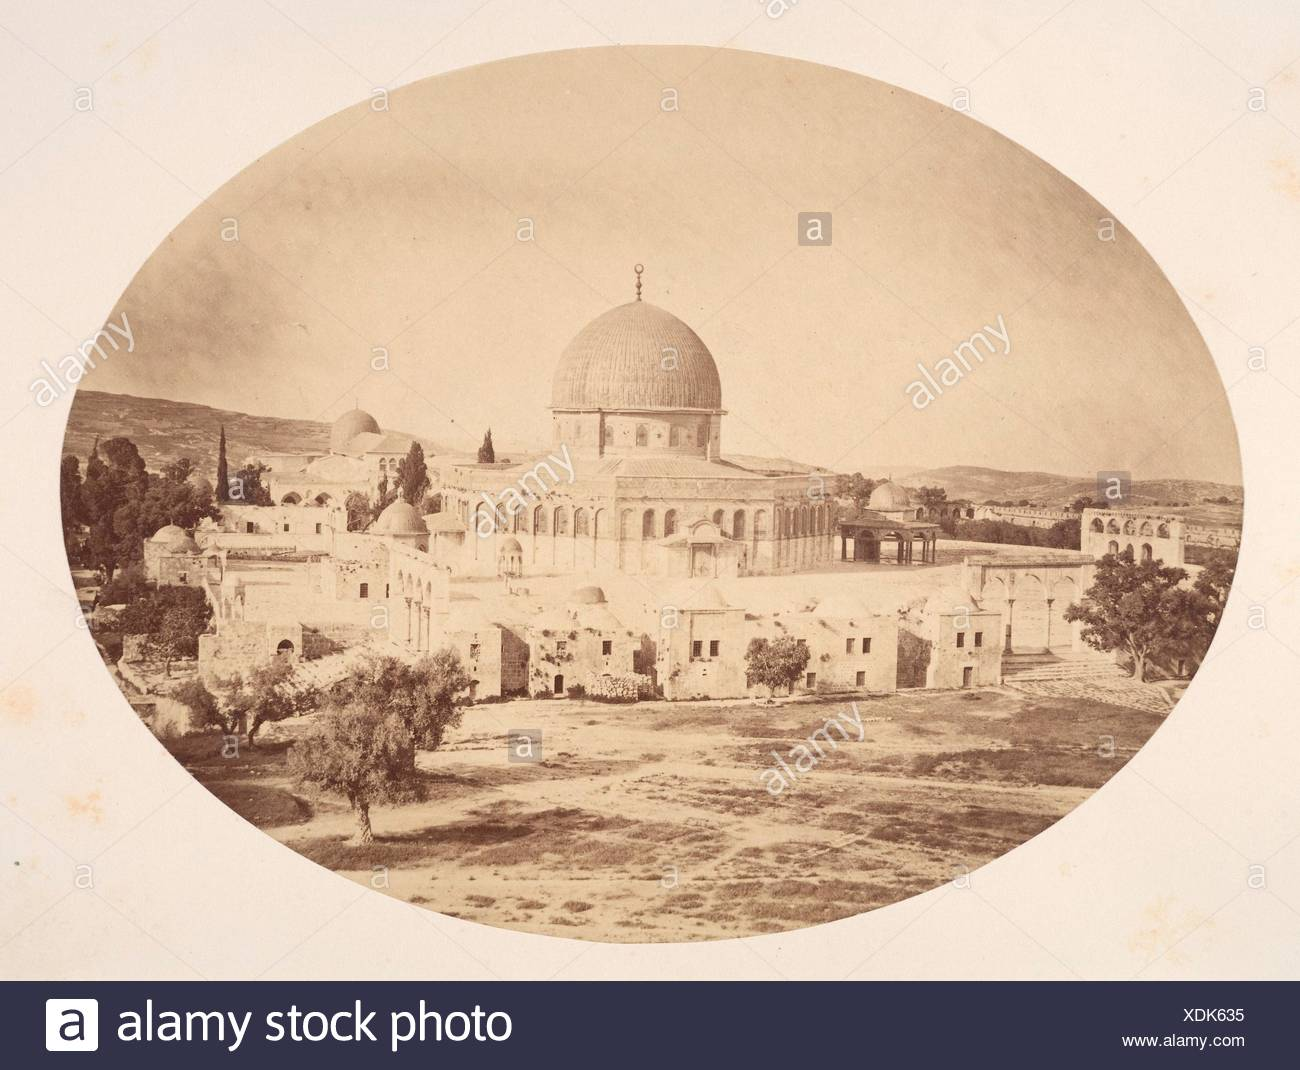 mount zion muslim dating site This image shows the archaeological site at jerusalem's mt zion,  layers, there  are also strata present reflecting a variety of the many islamic.